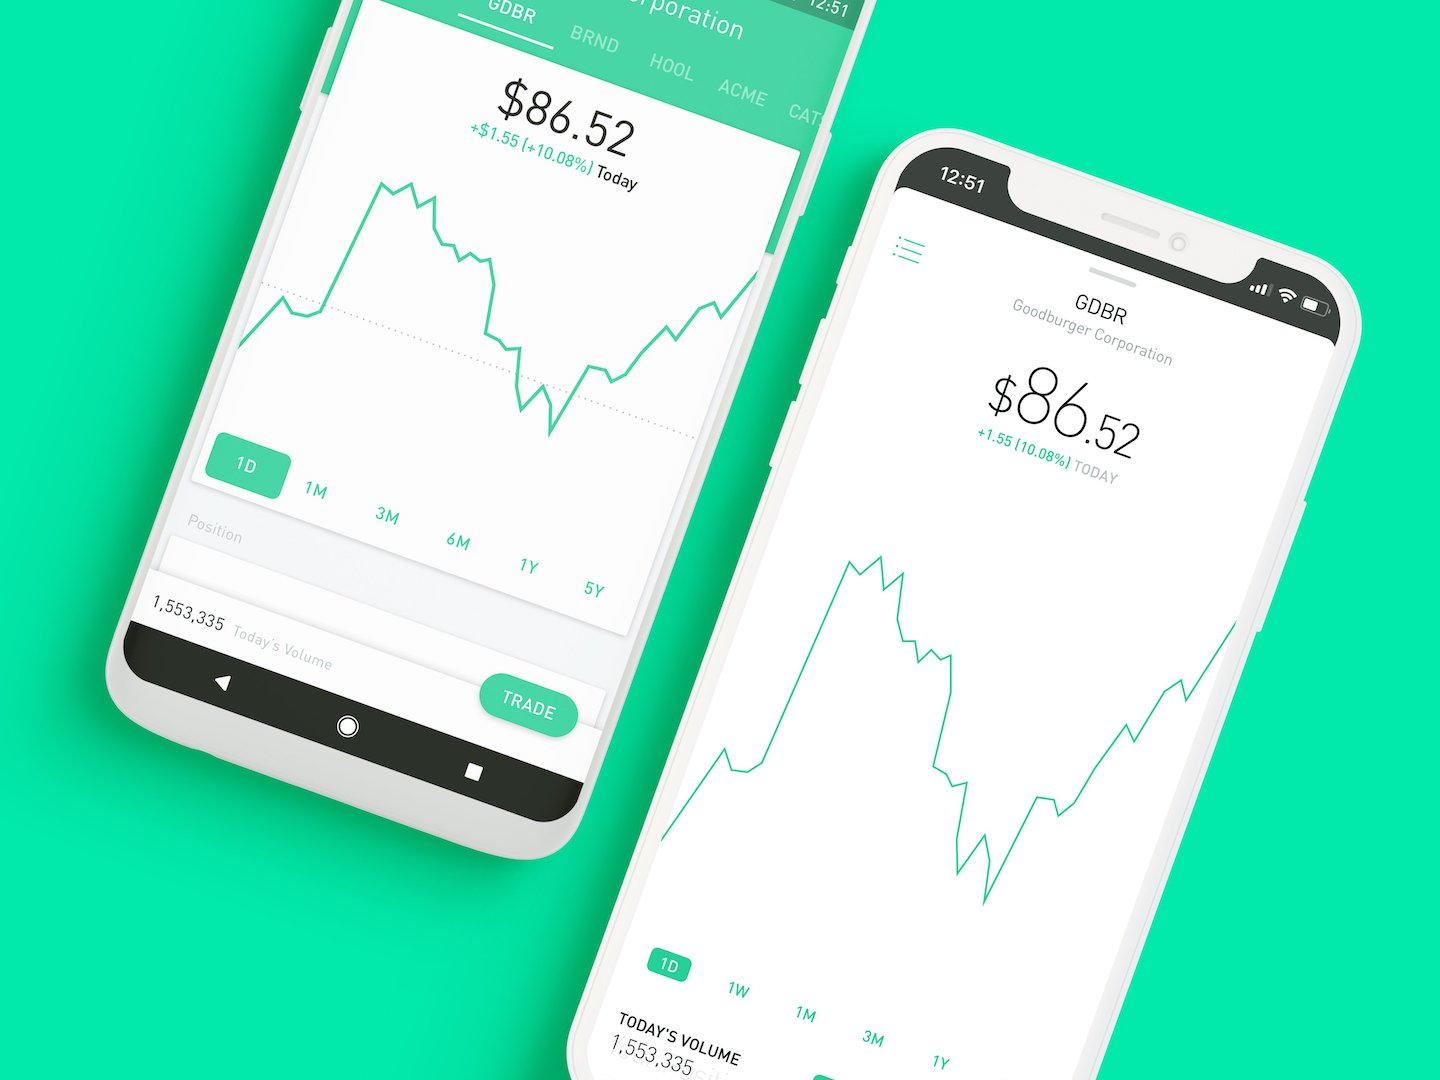 Robinhood Review 2019 - Good for Beginners, Bad for Everyone